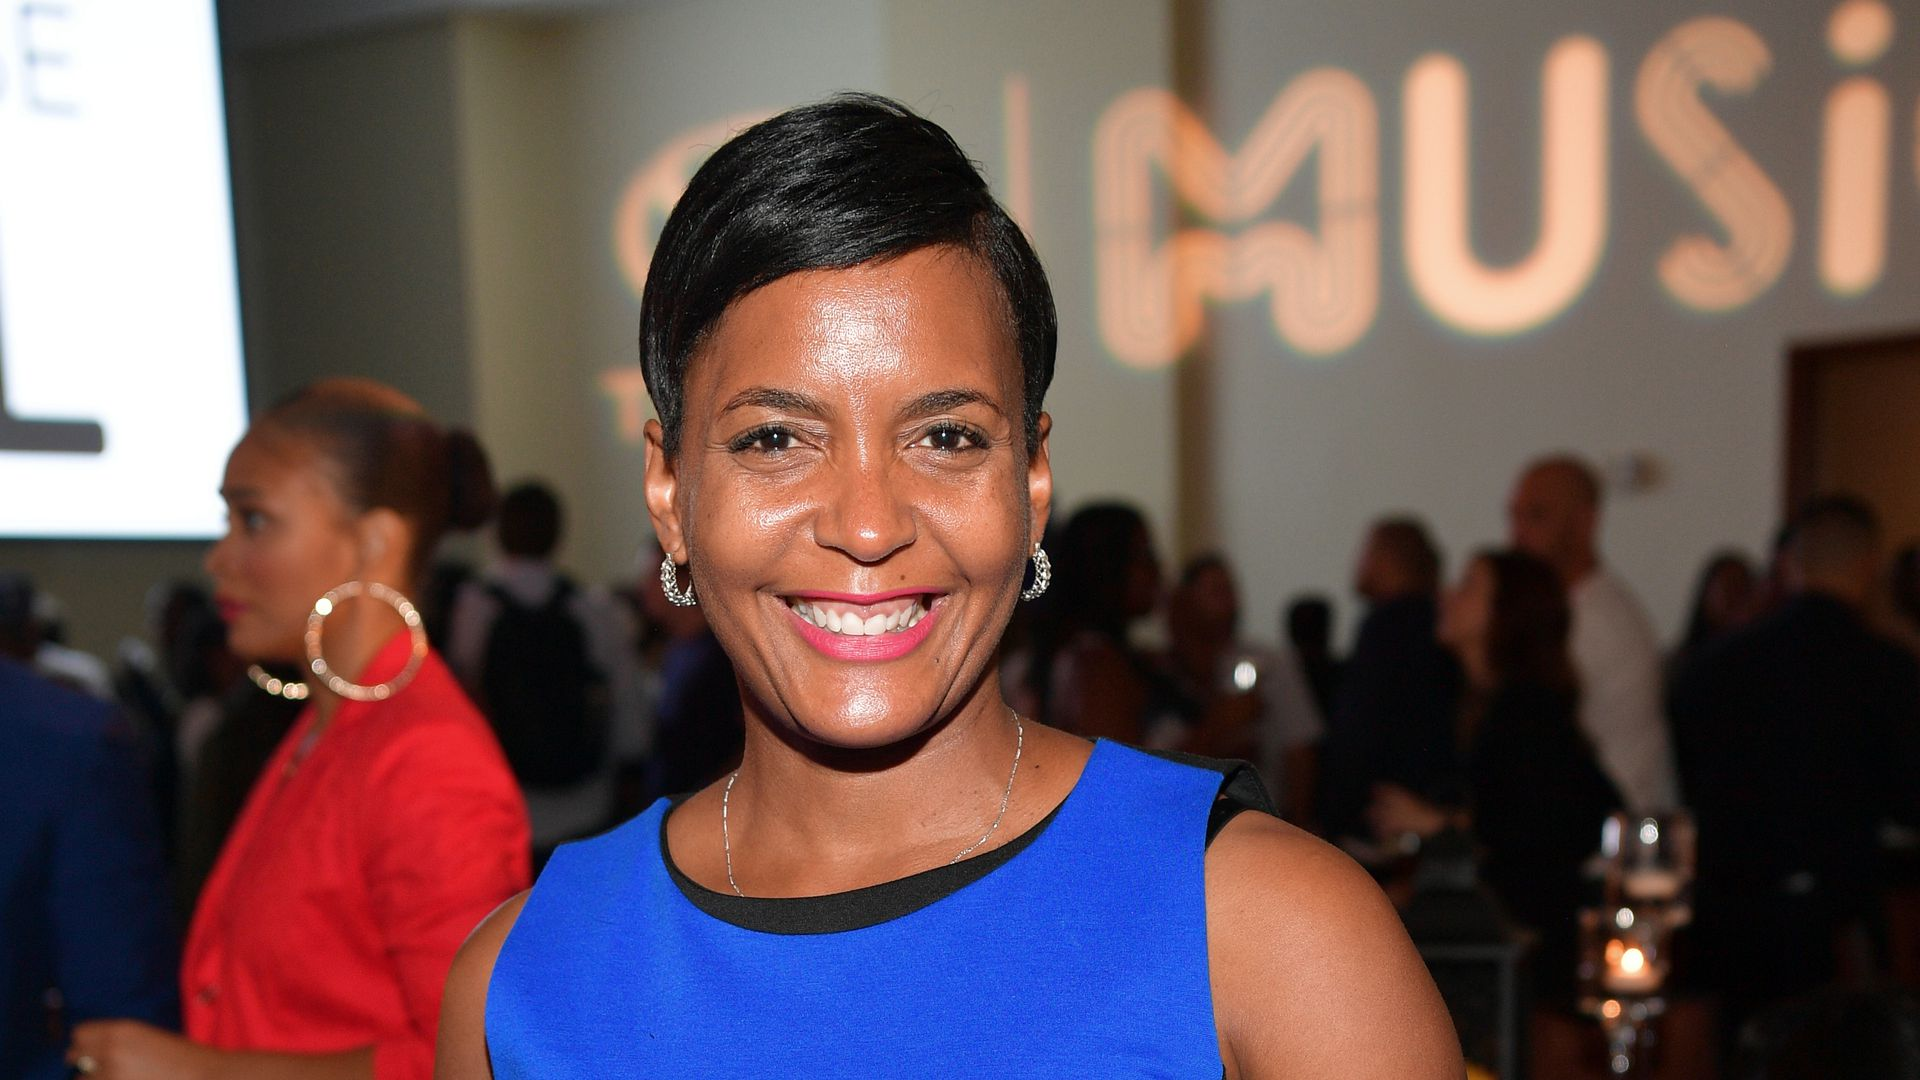 Keisha Lance Bottoms won the Atlanta mayoral election, but the vote is being contested.